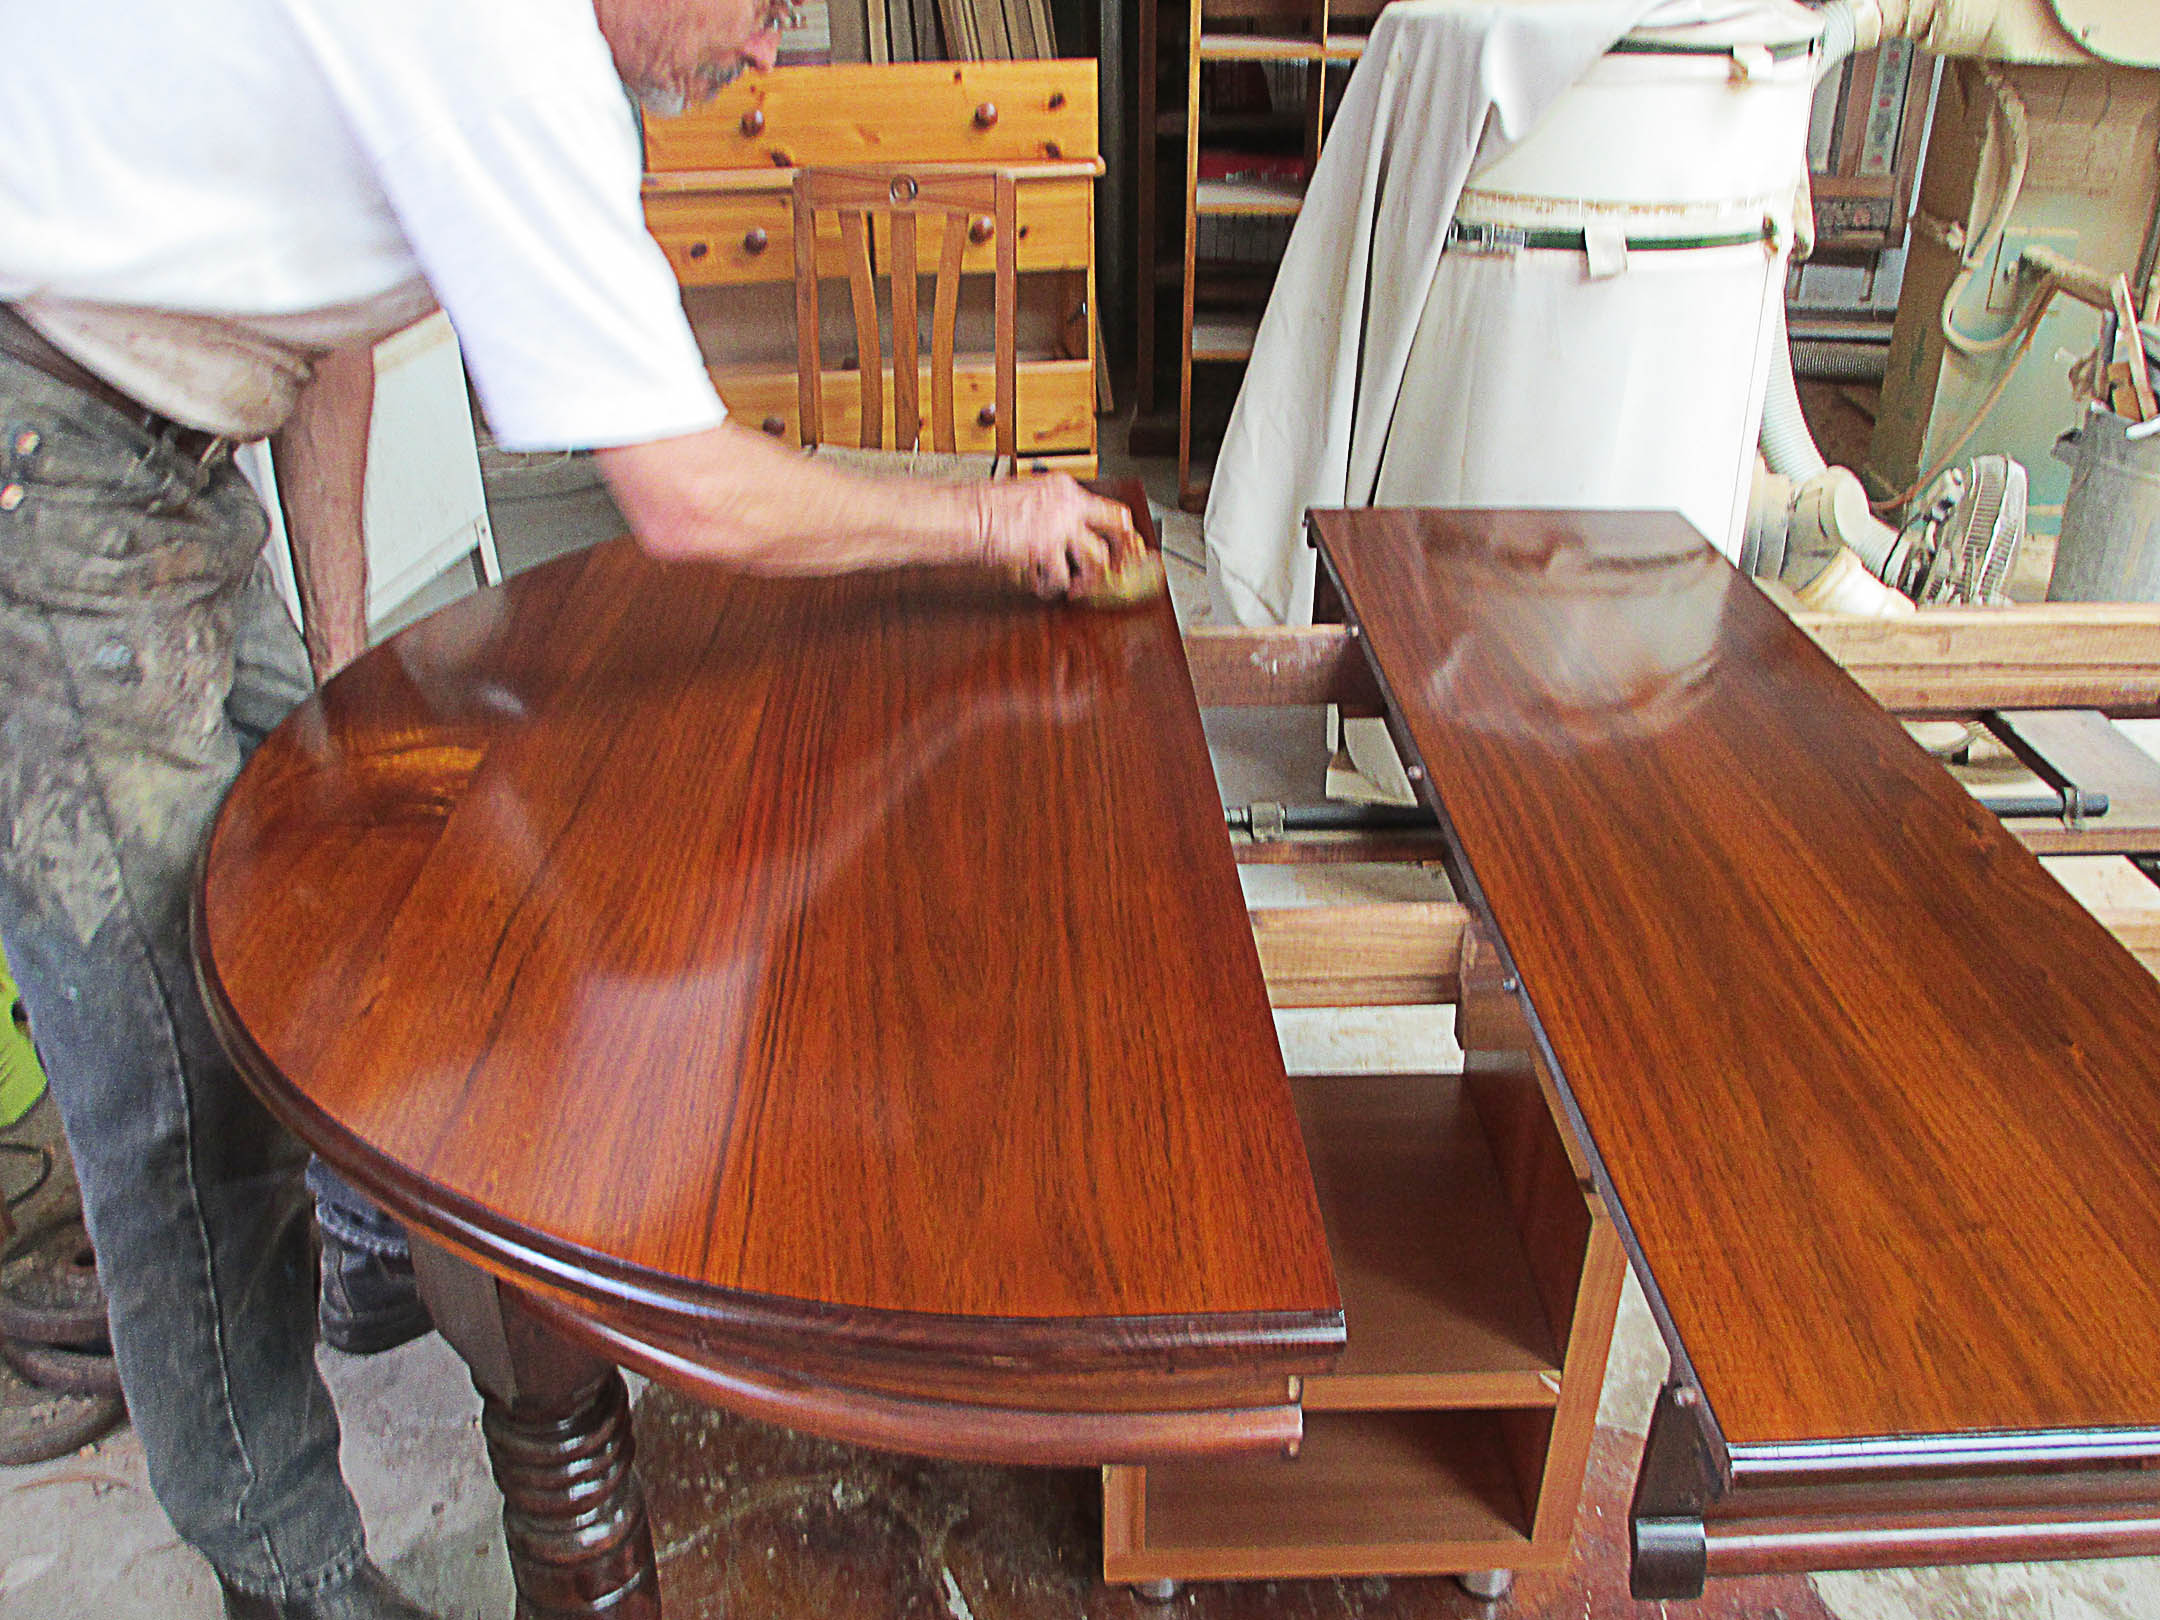 French Polishing Table